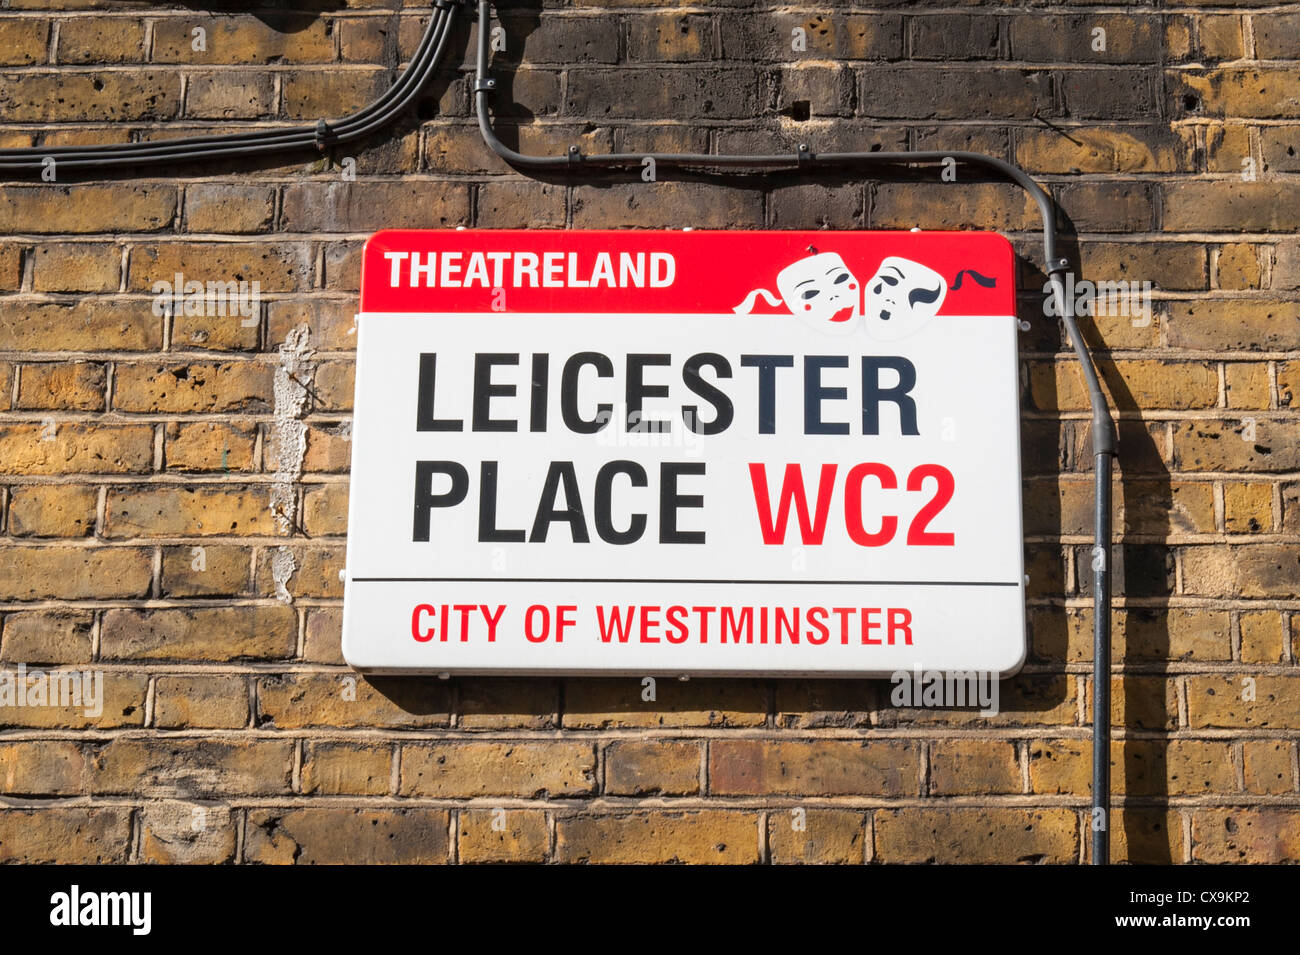 London West End Leicester Square Place Theatreland Theaterland street road sign brick wall - Stock Image